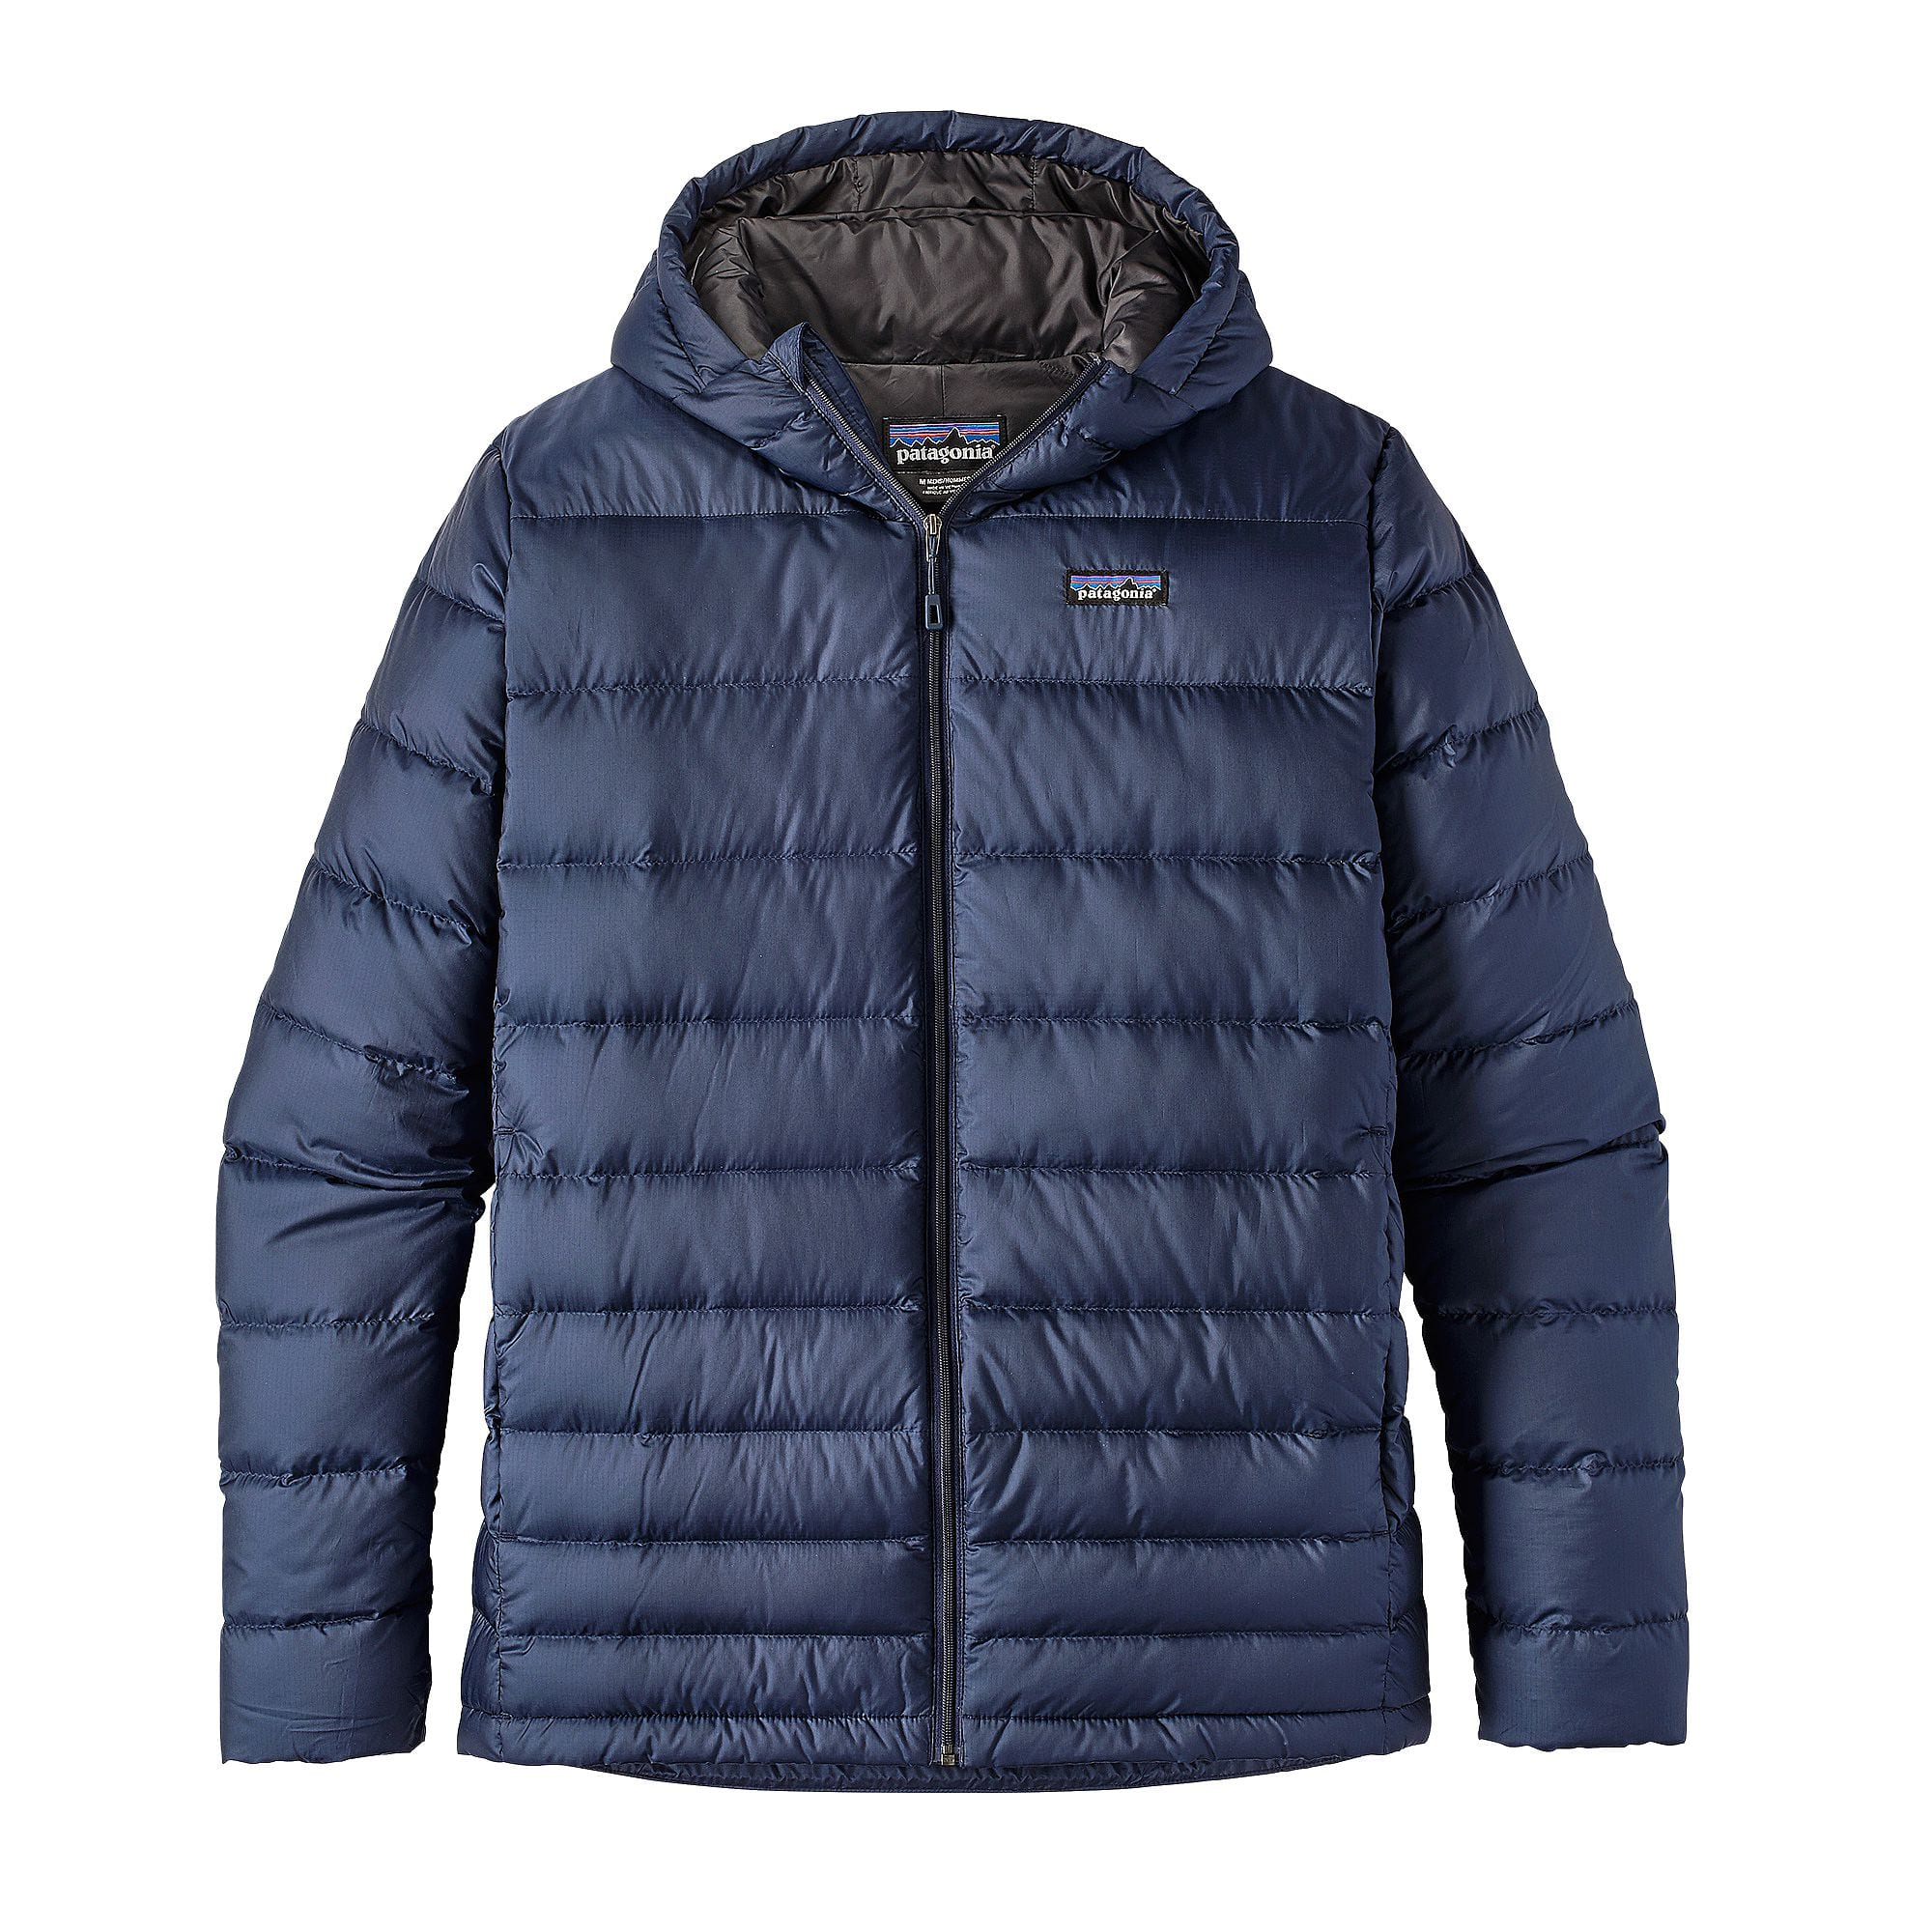 Patagonia Mens Hi Loft Down Hoody Jacket Navy Blue The